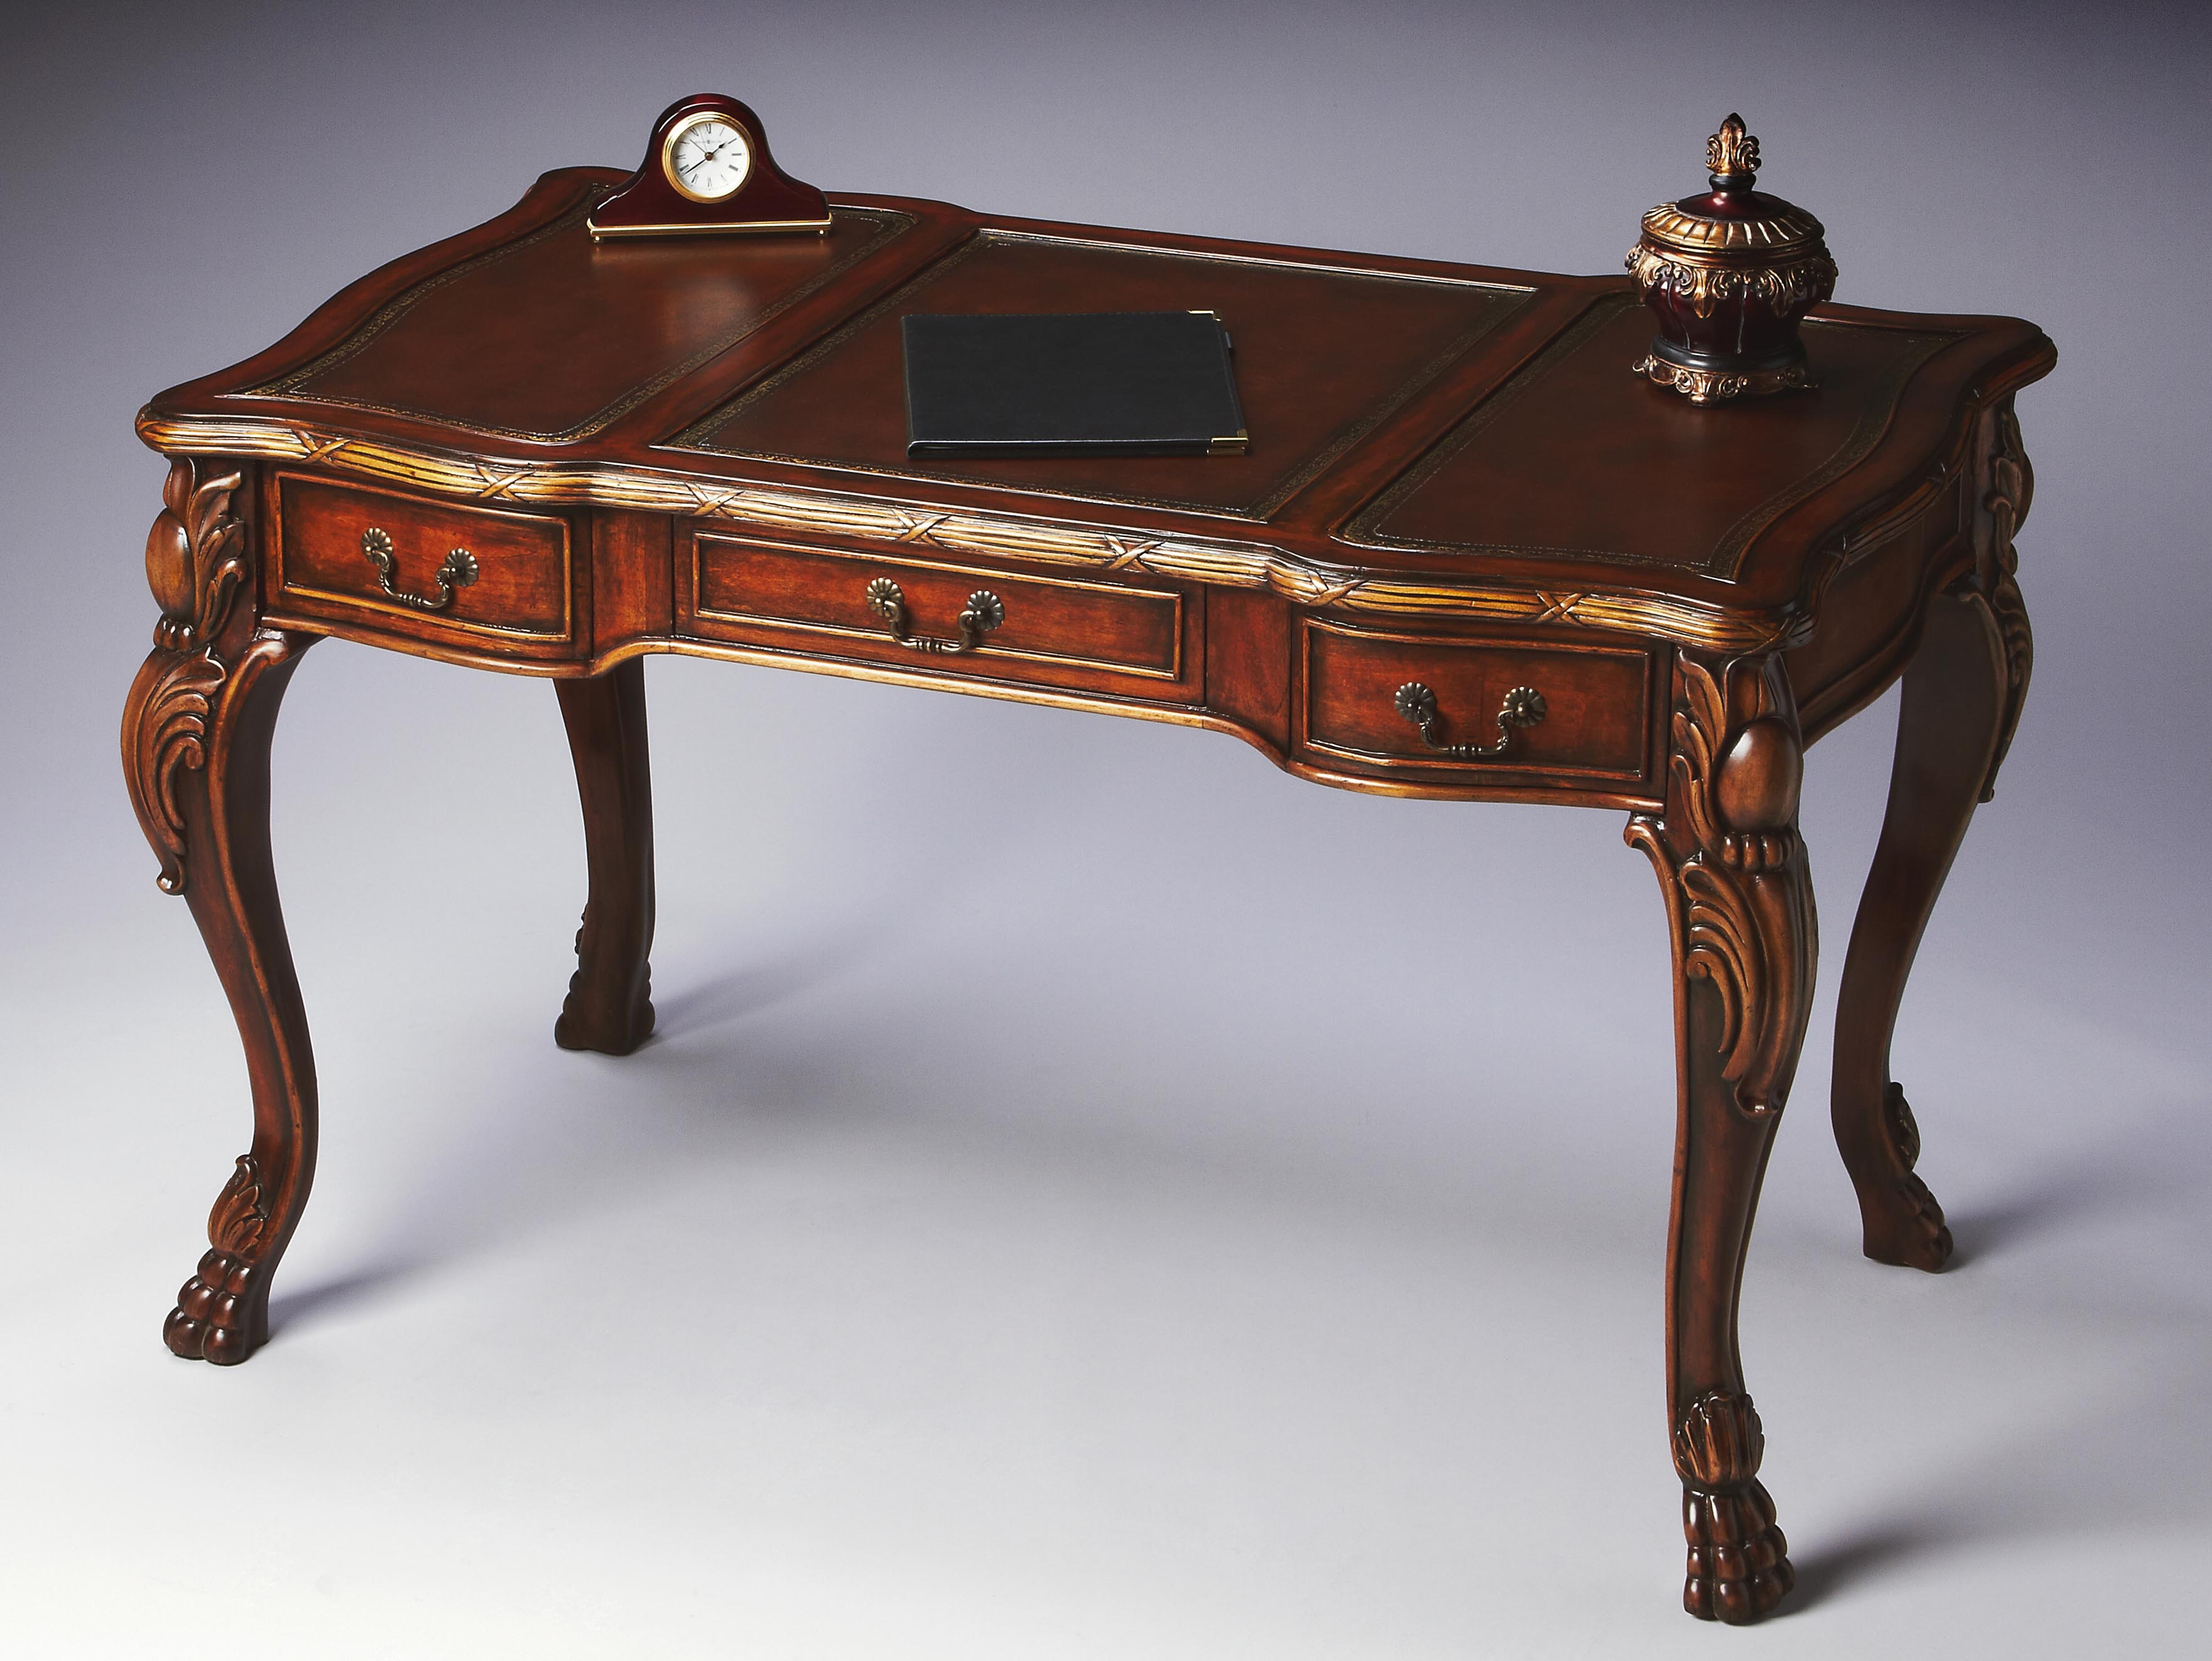 Ornate writing desk